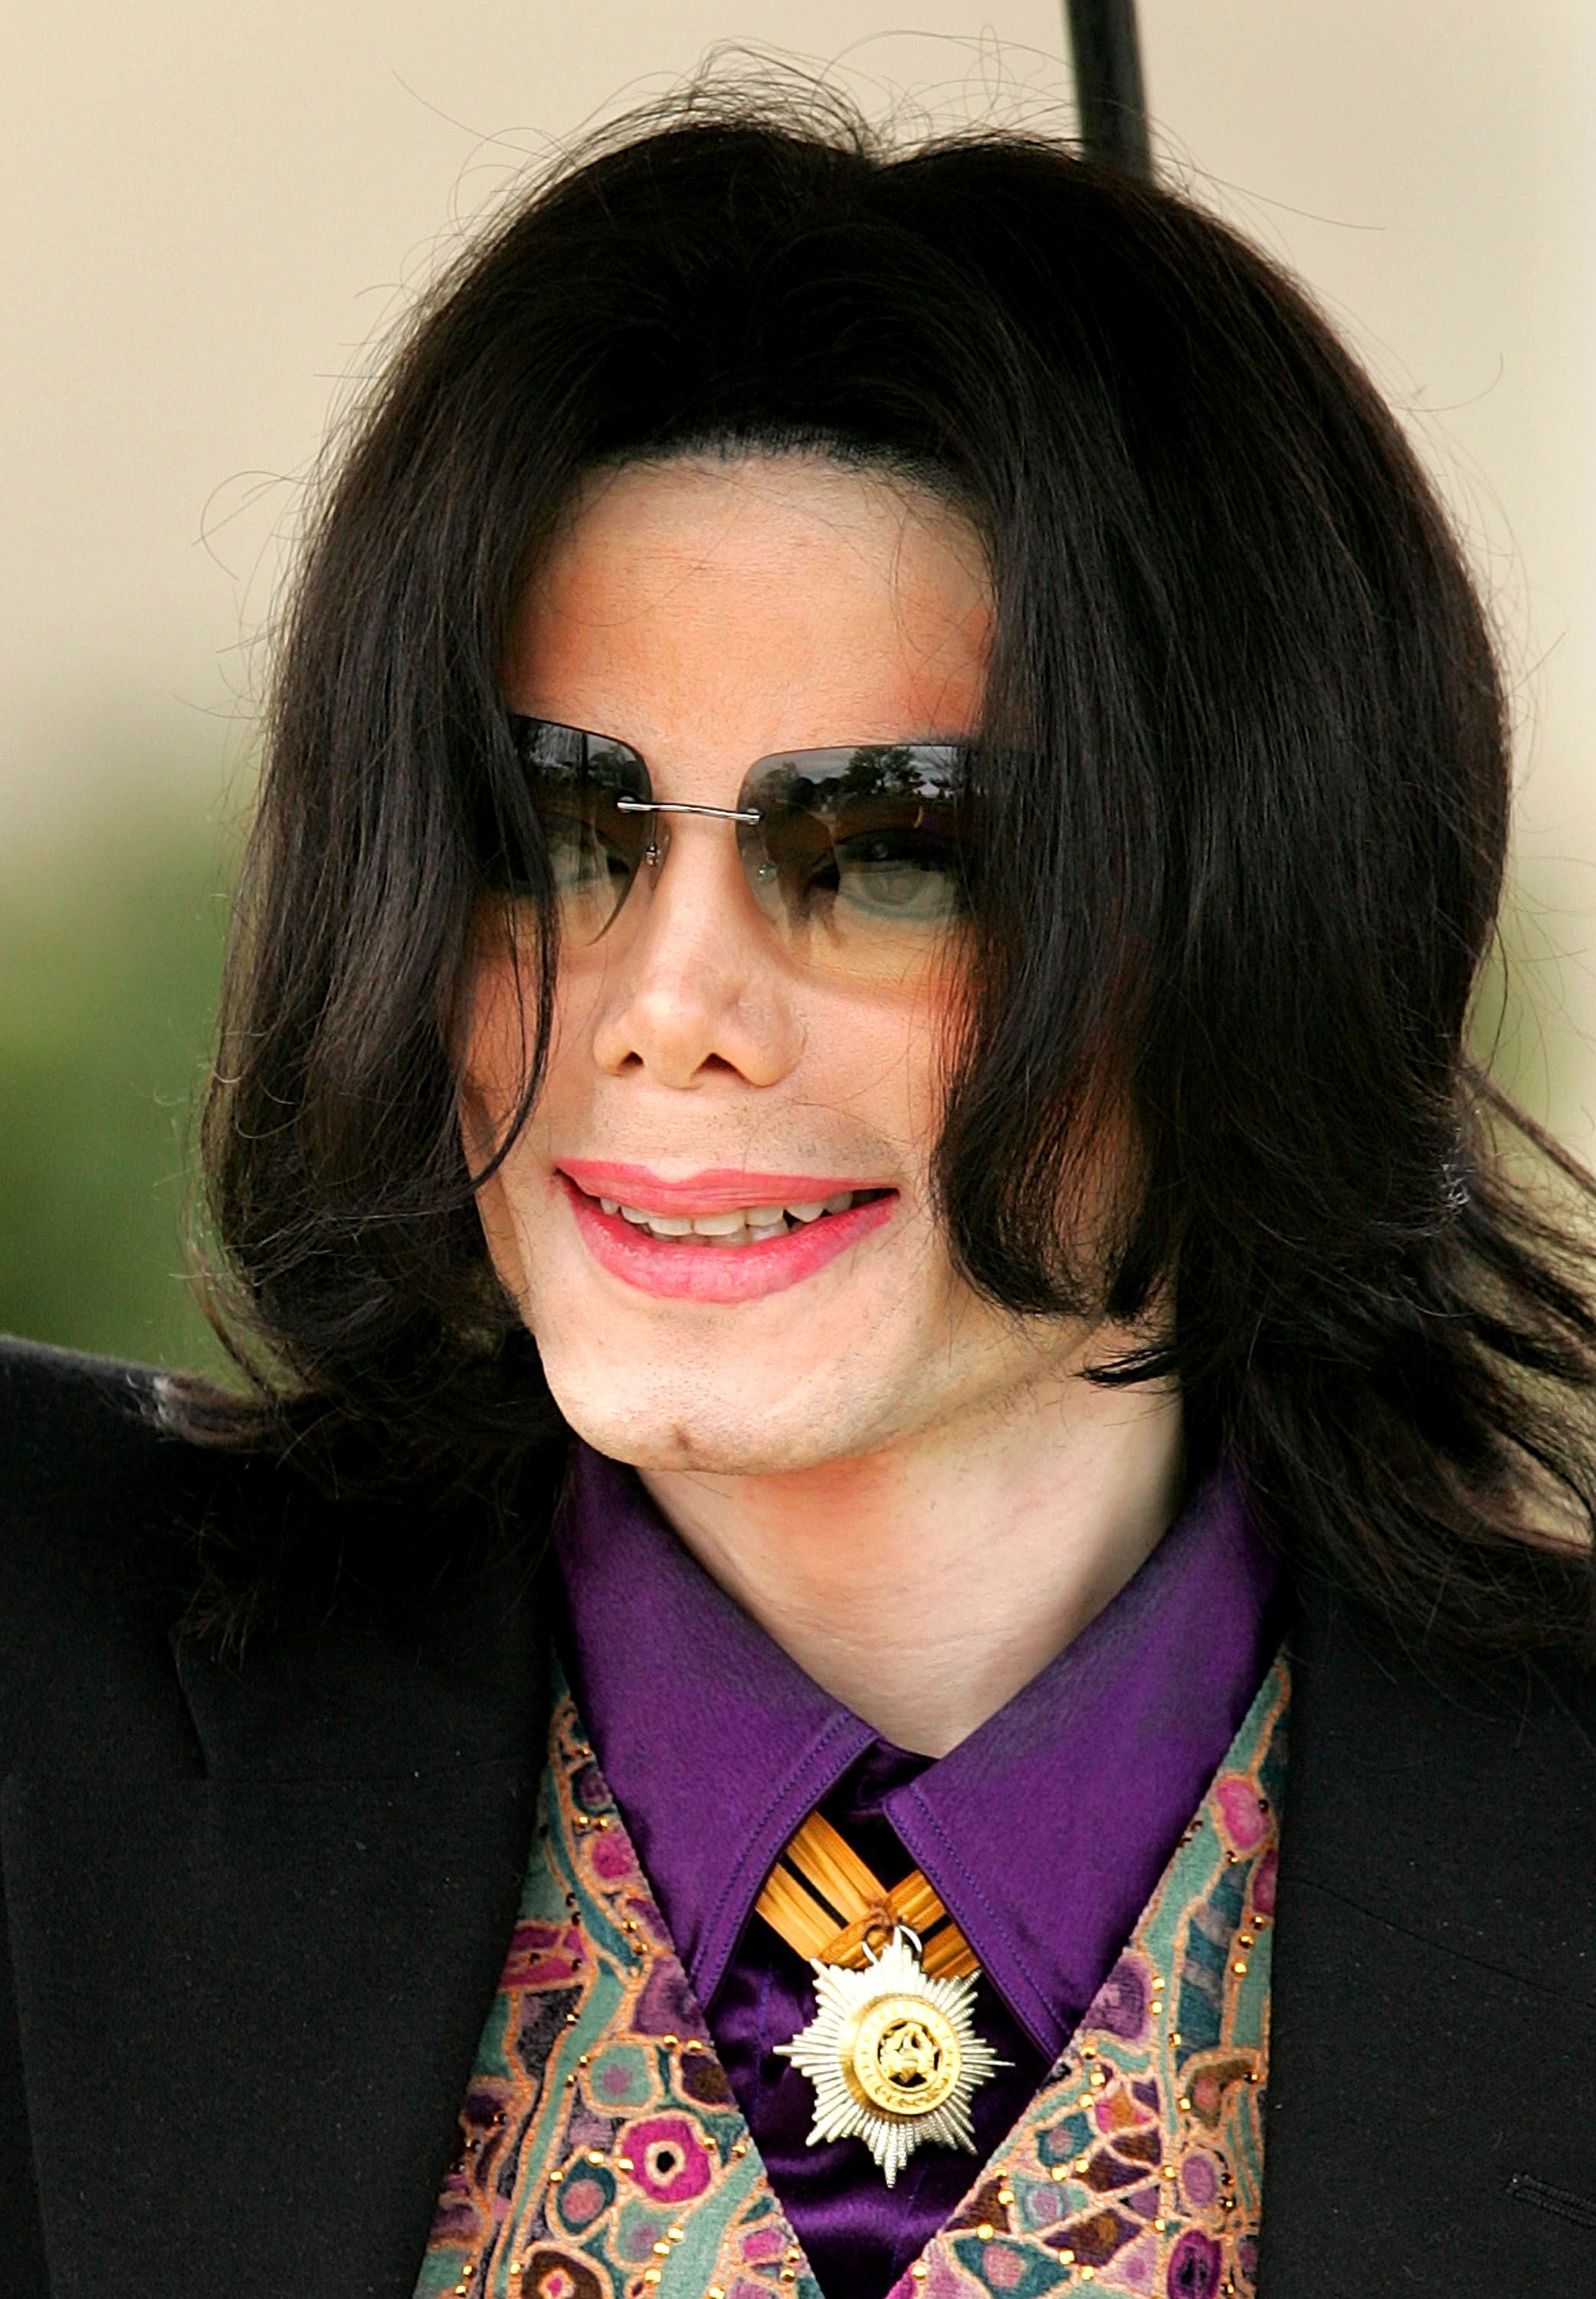 Michael Jackson walks out of court on March 3, 2005 in Santa Maria, California | Photo: Getty Images